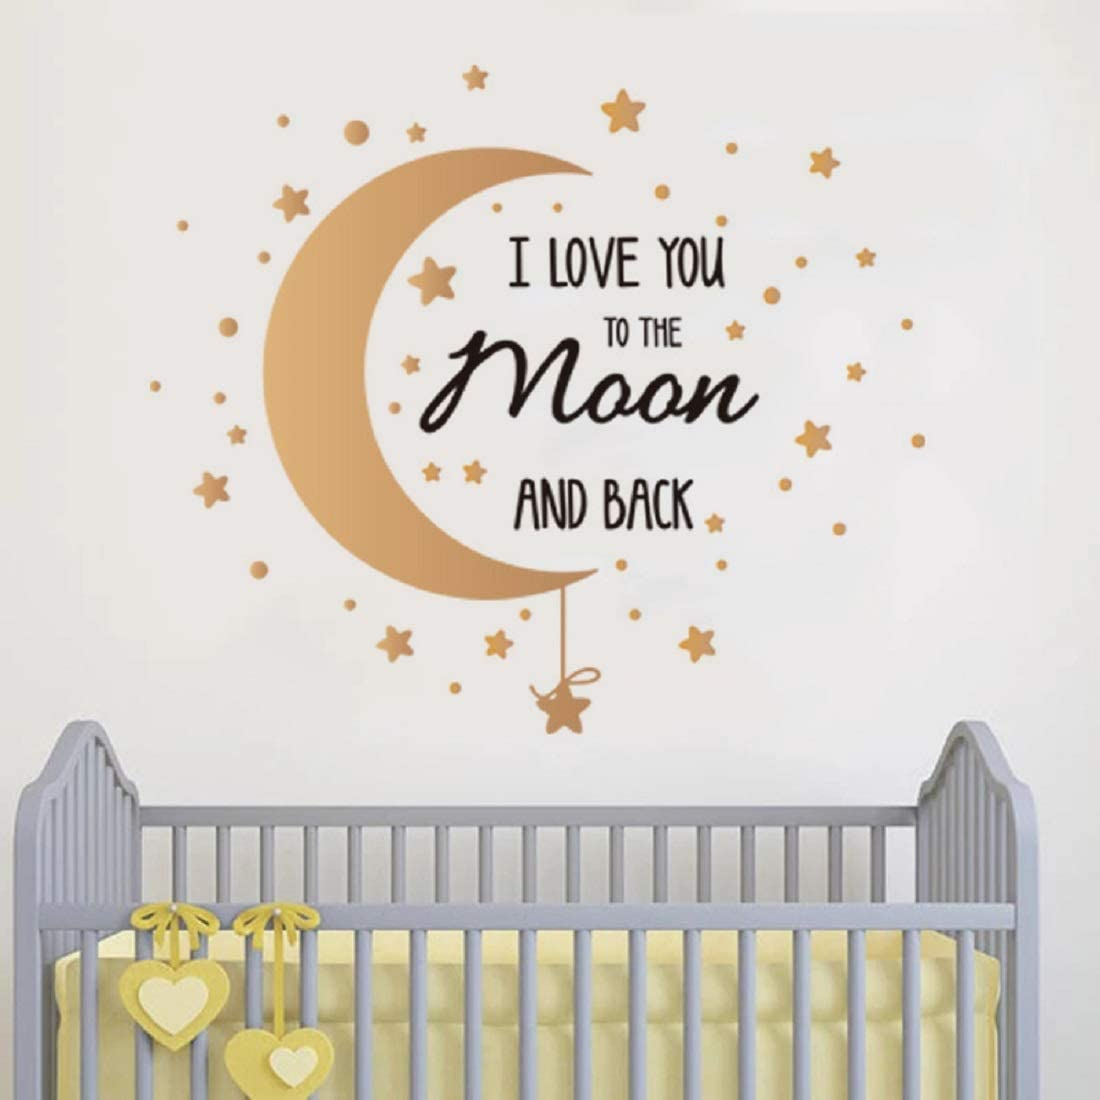 I Love You to The Moon and Back Quotes Wall Decals Moon Stars DIY Sticker Art Mural Sayings for Home Nursery Decor